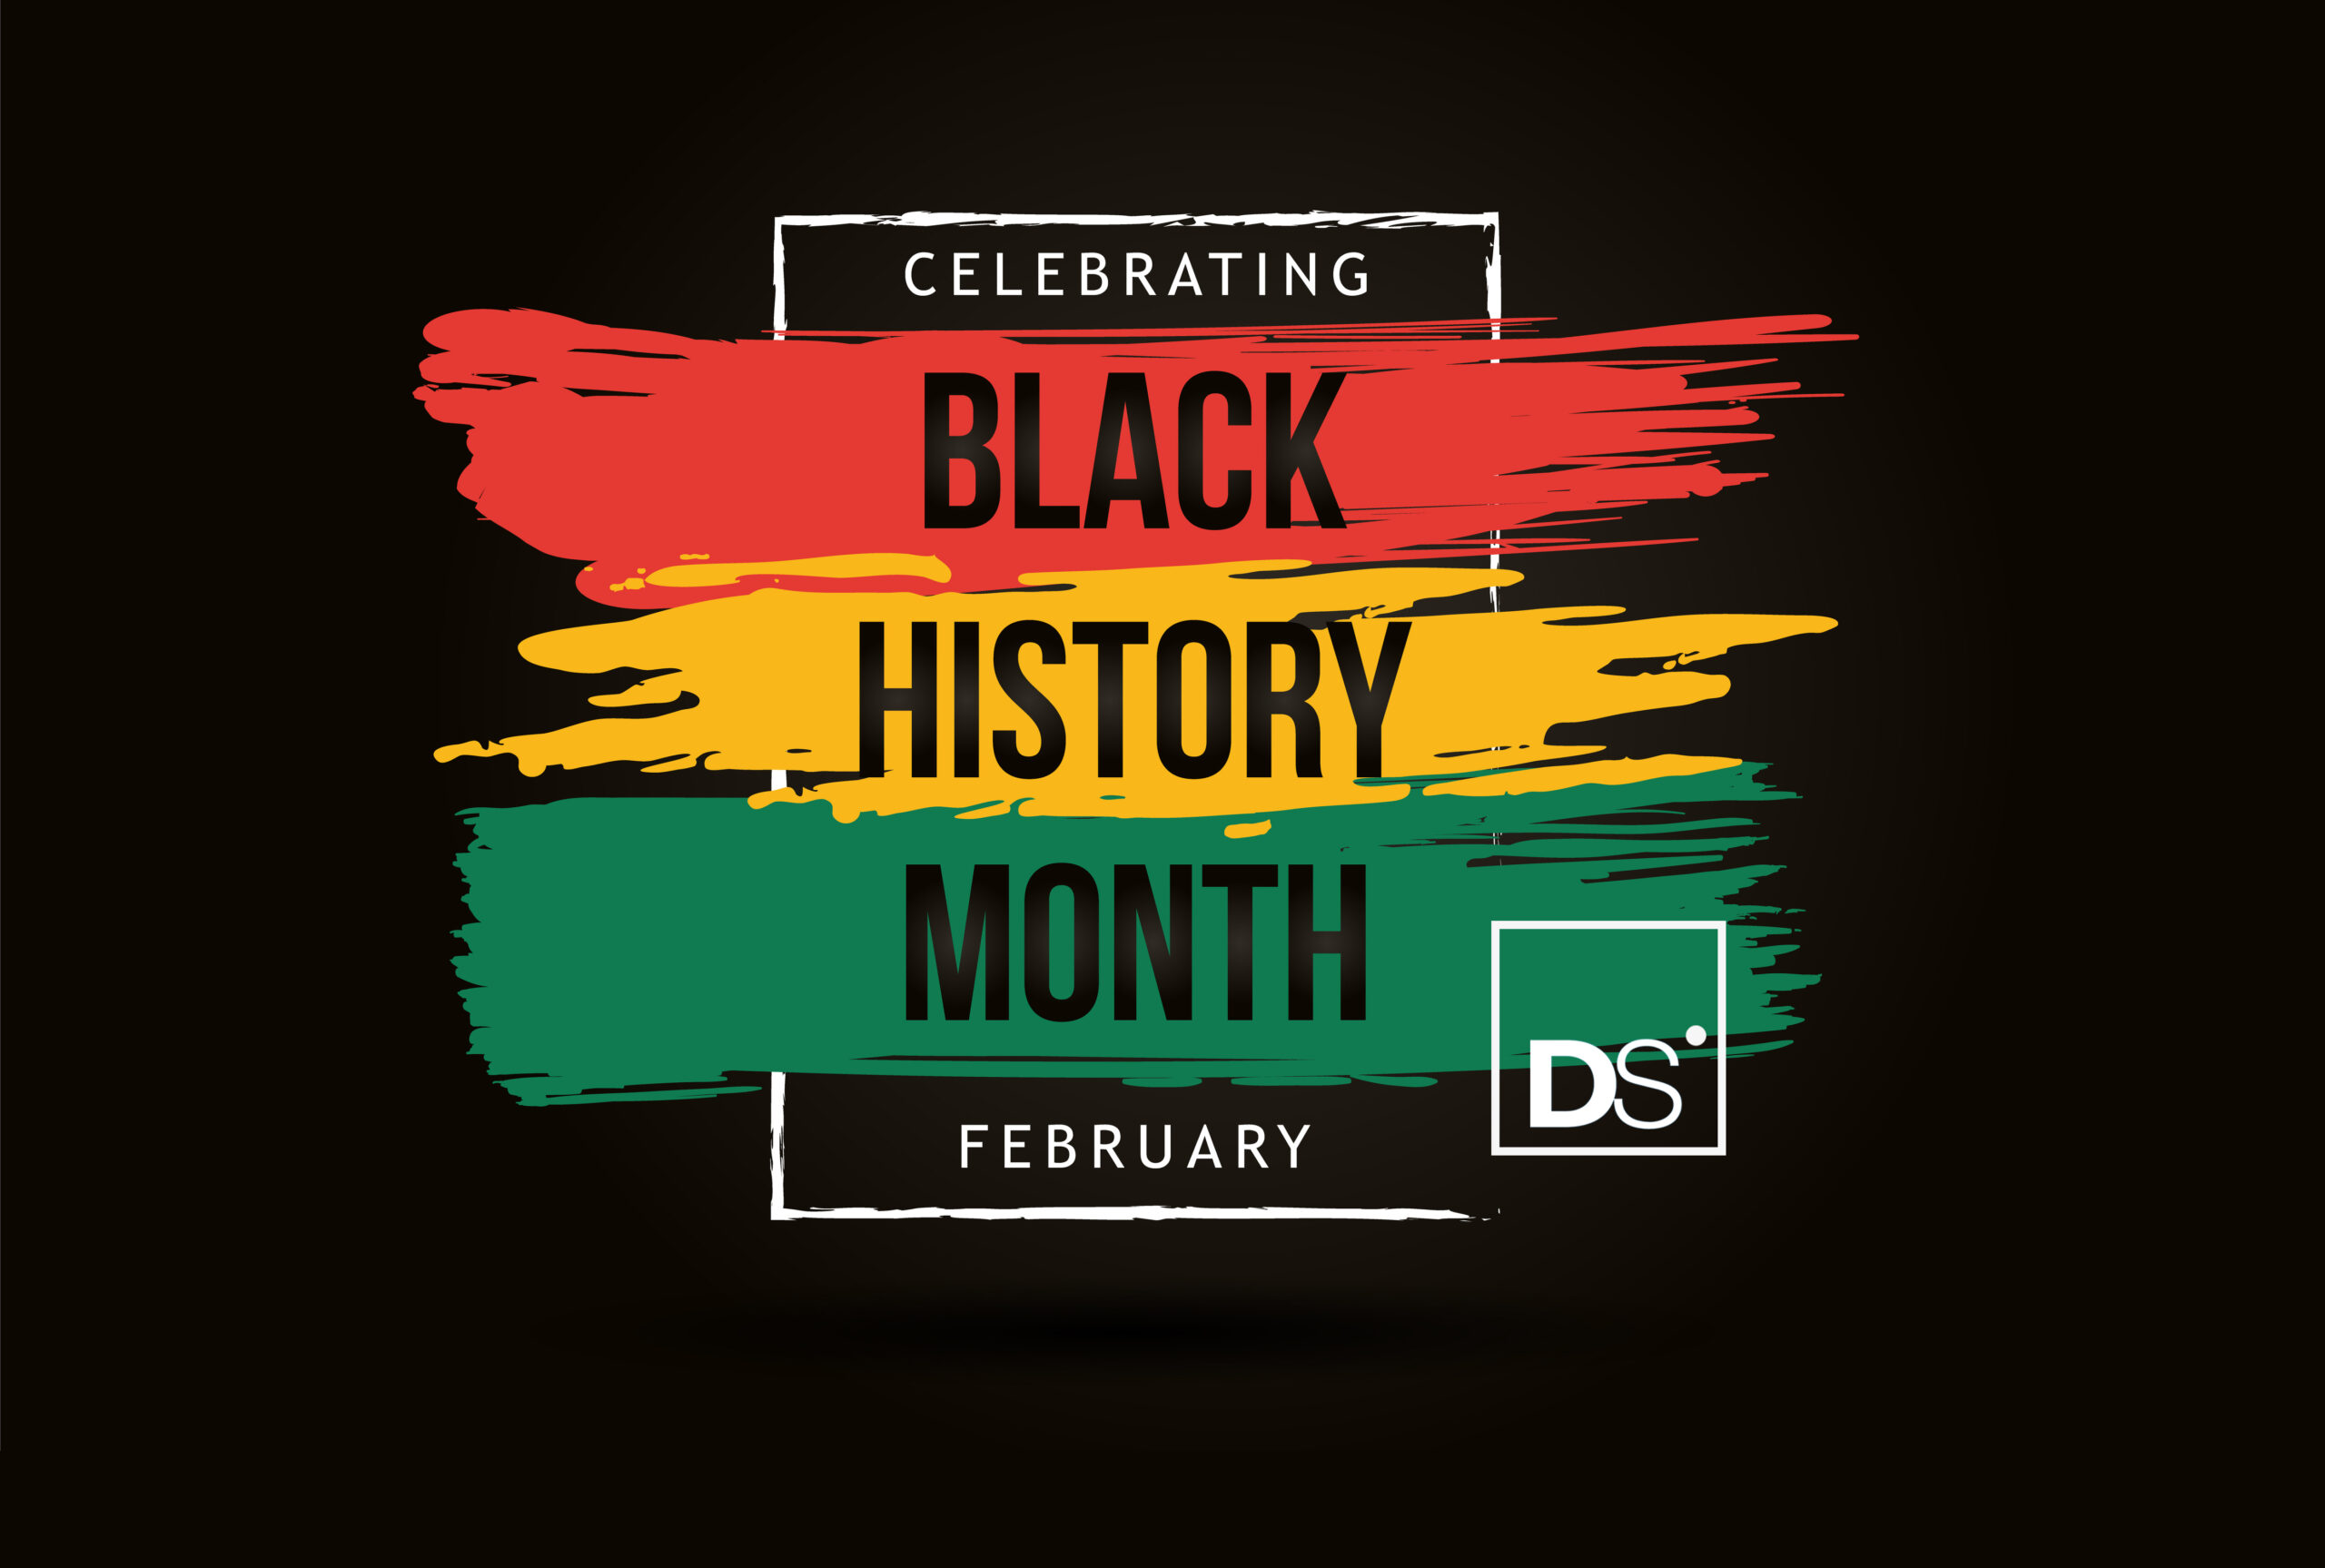 Honoring Black History Month- Our Commitment to Racial Equality